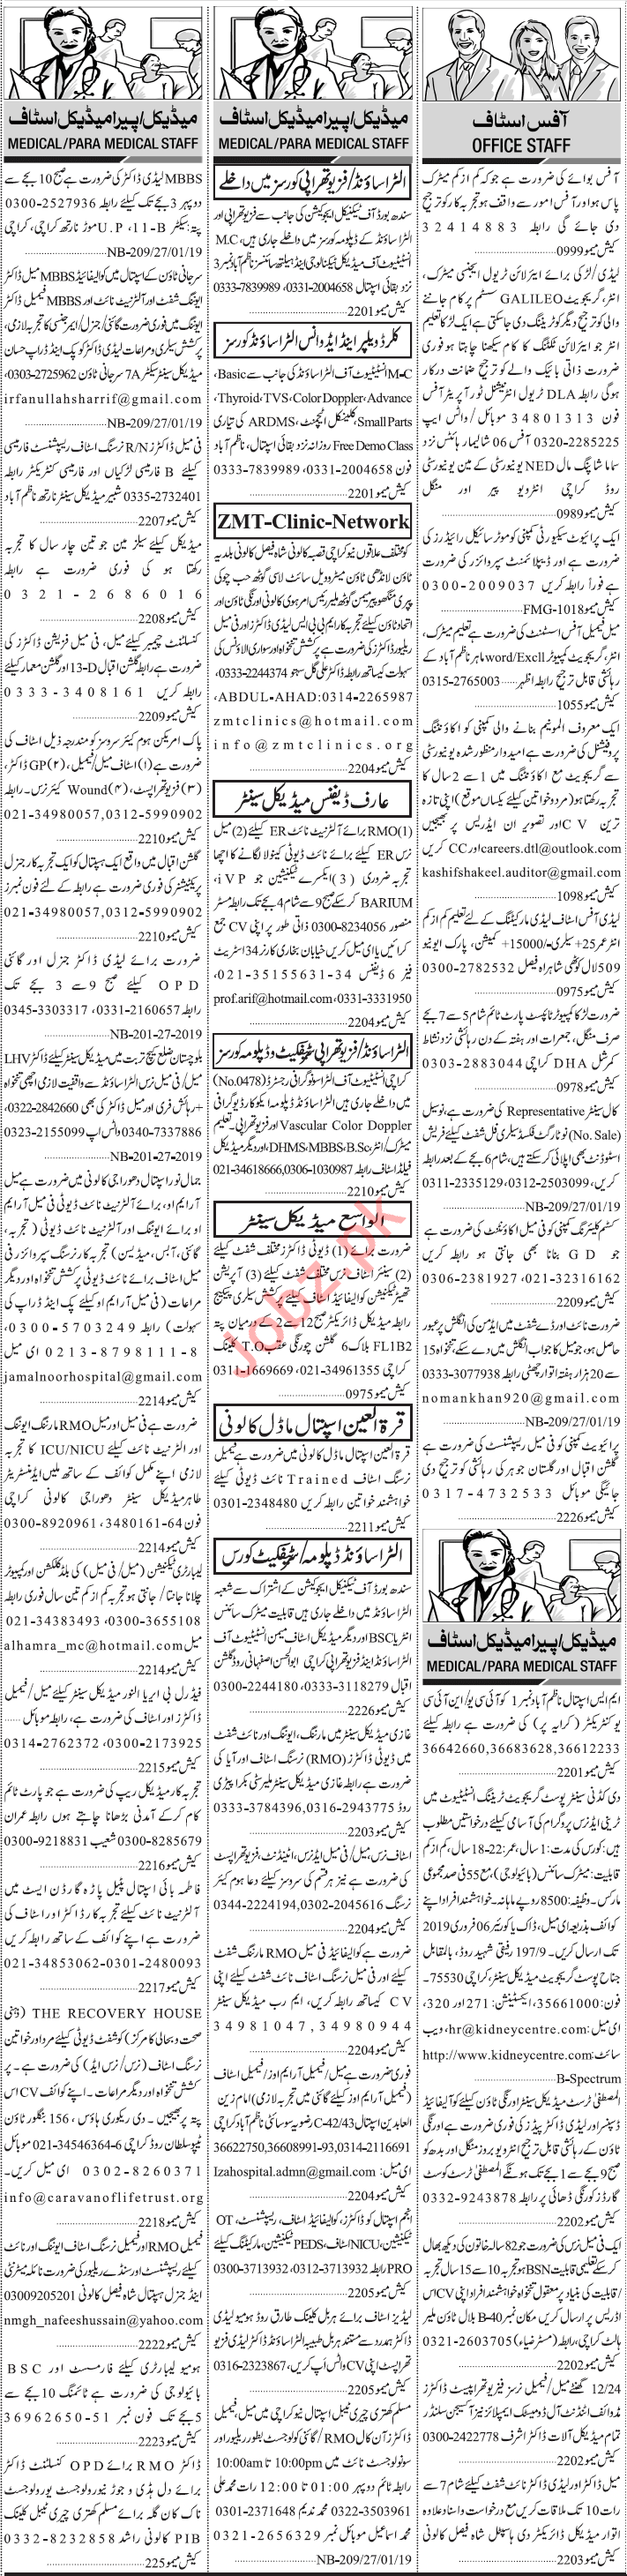 Jang Sunday Classified Ads 27th Jan 2019 for Medical Staff